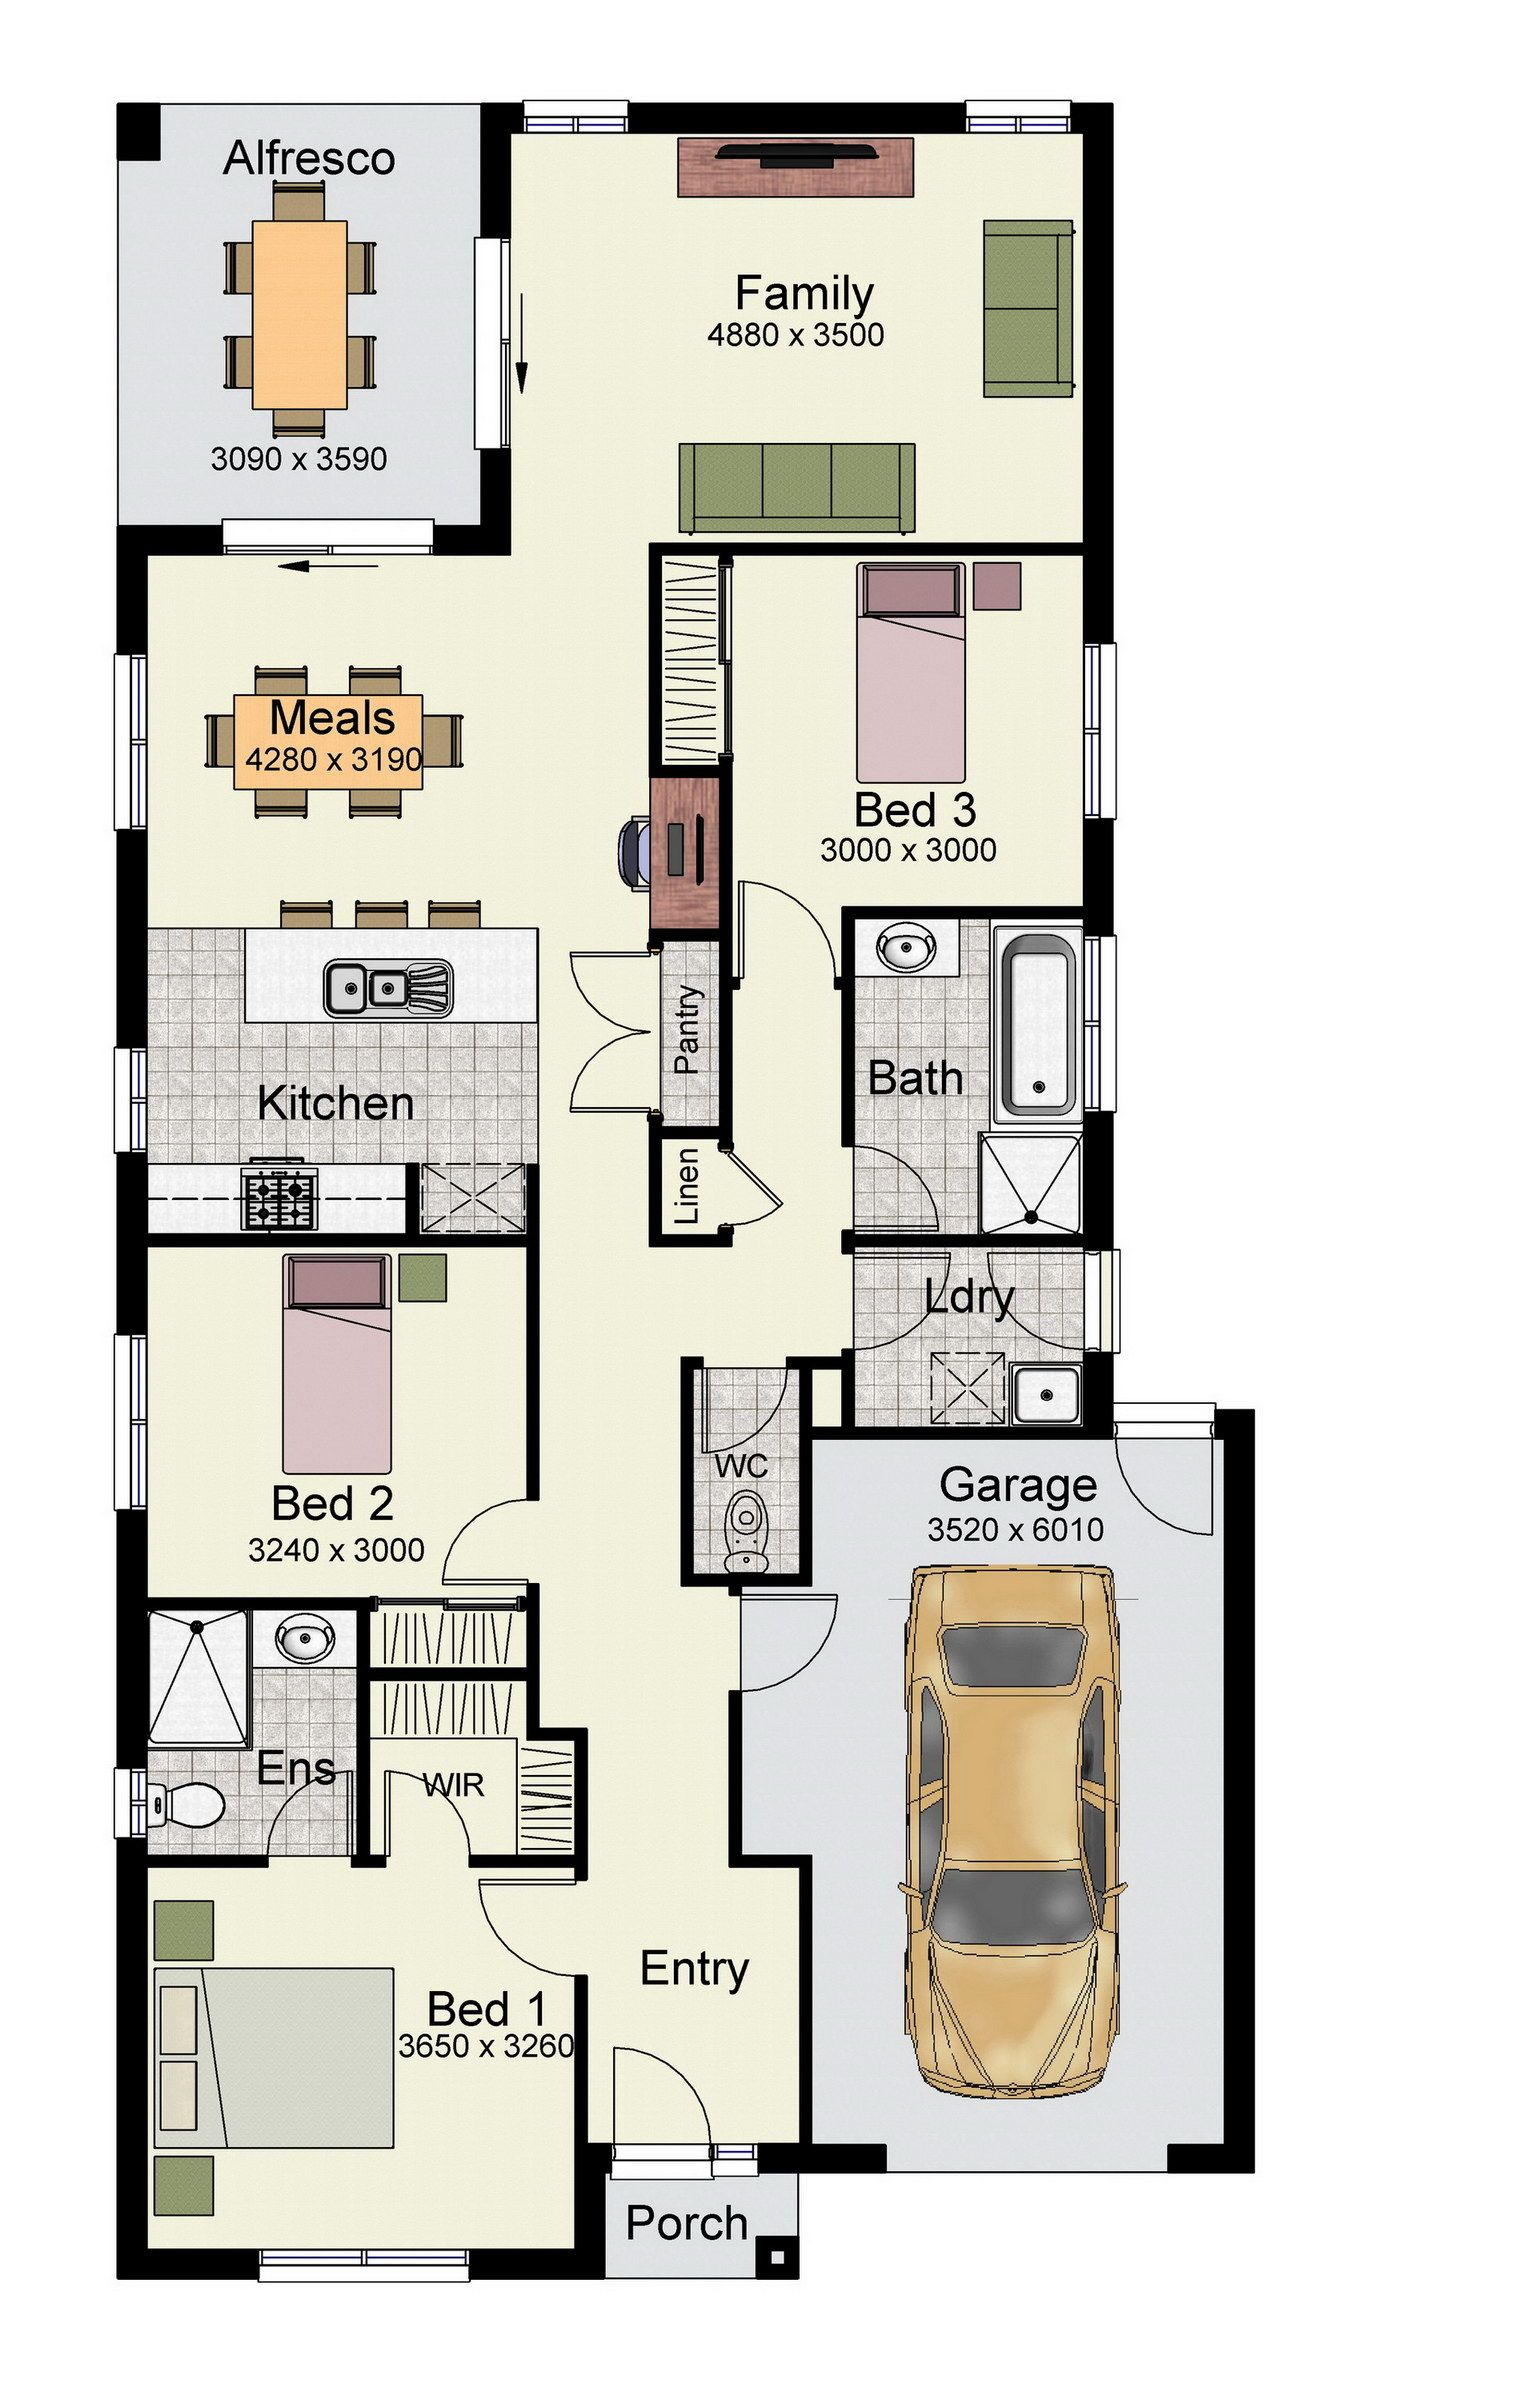 The Primo 162 is a narrow design with modern amenities for first home buyers.